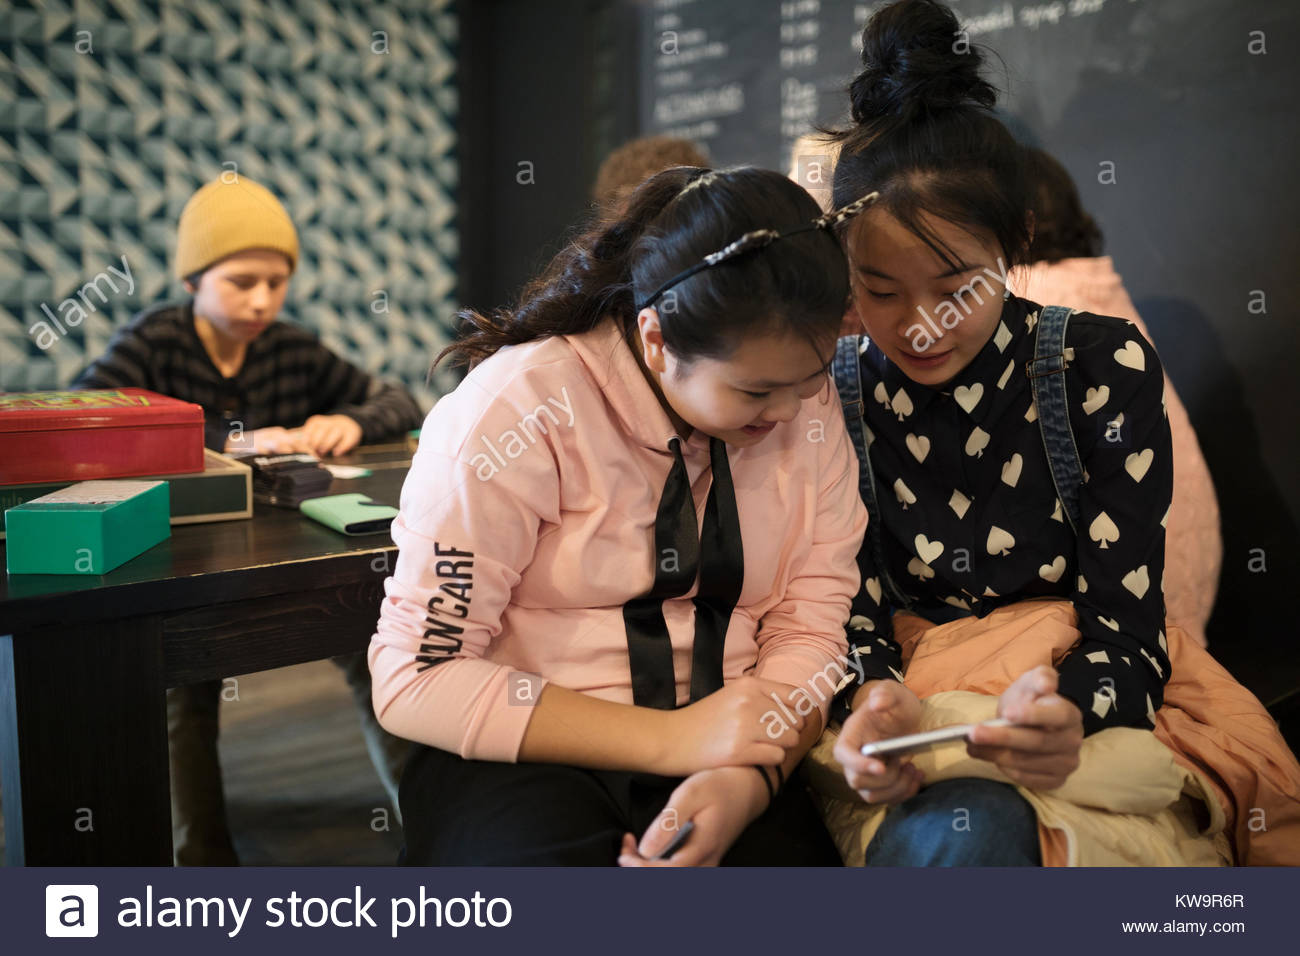 Asian tween girl amici texting con smart phone in cafe Immagini Stock